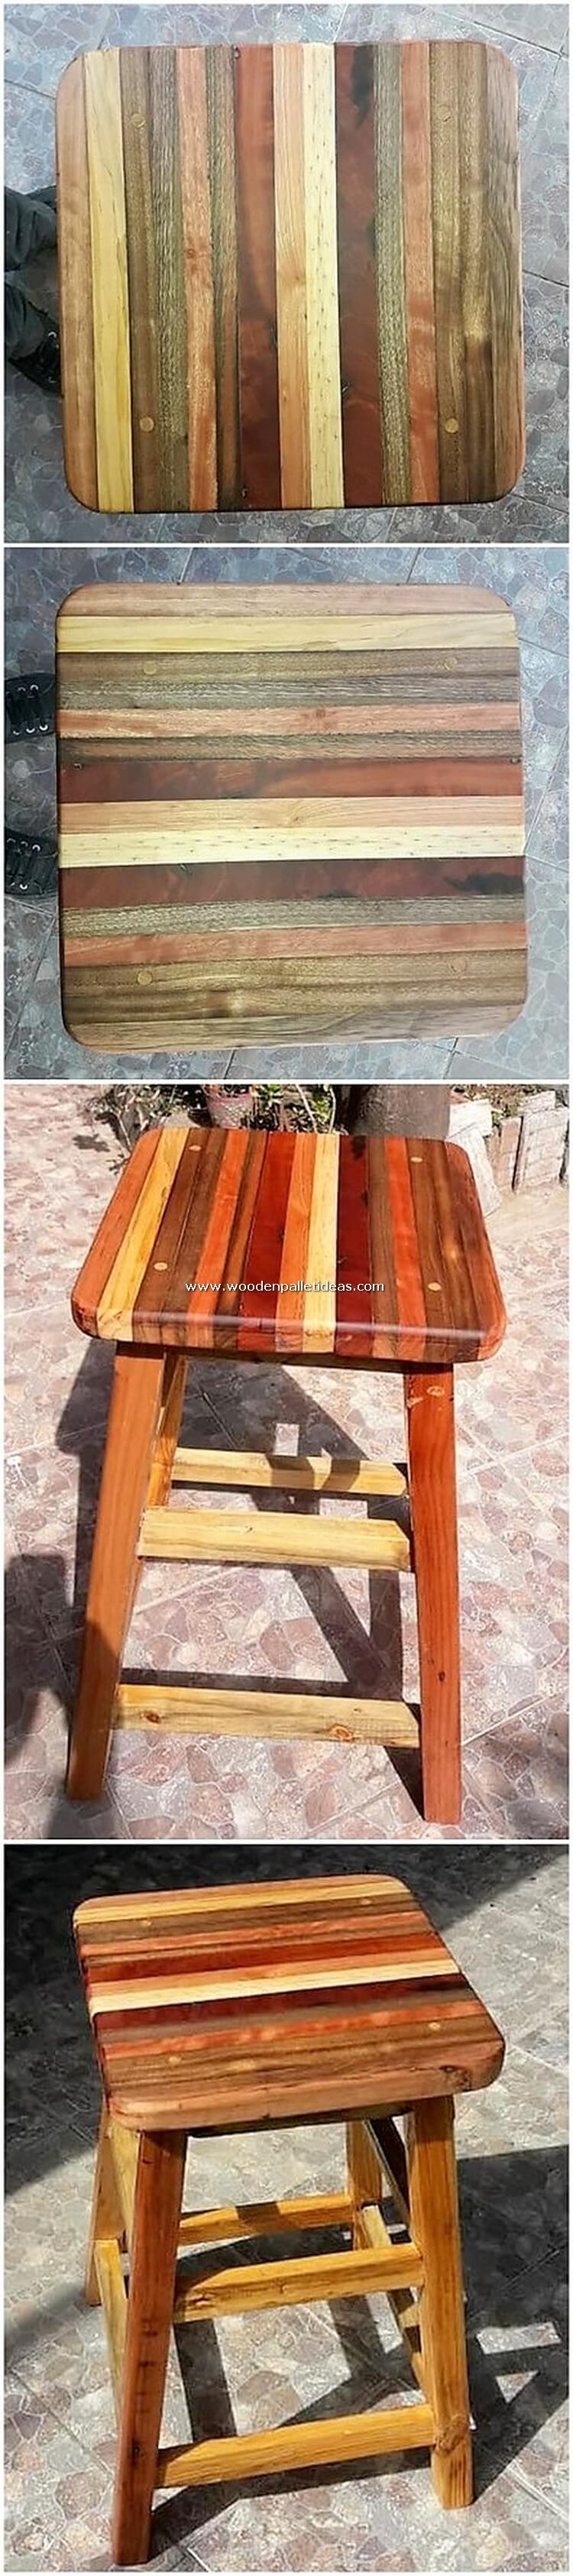 Pallet-Side-Table-1